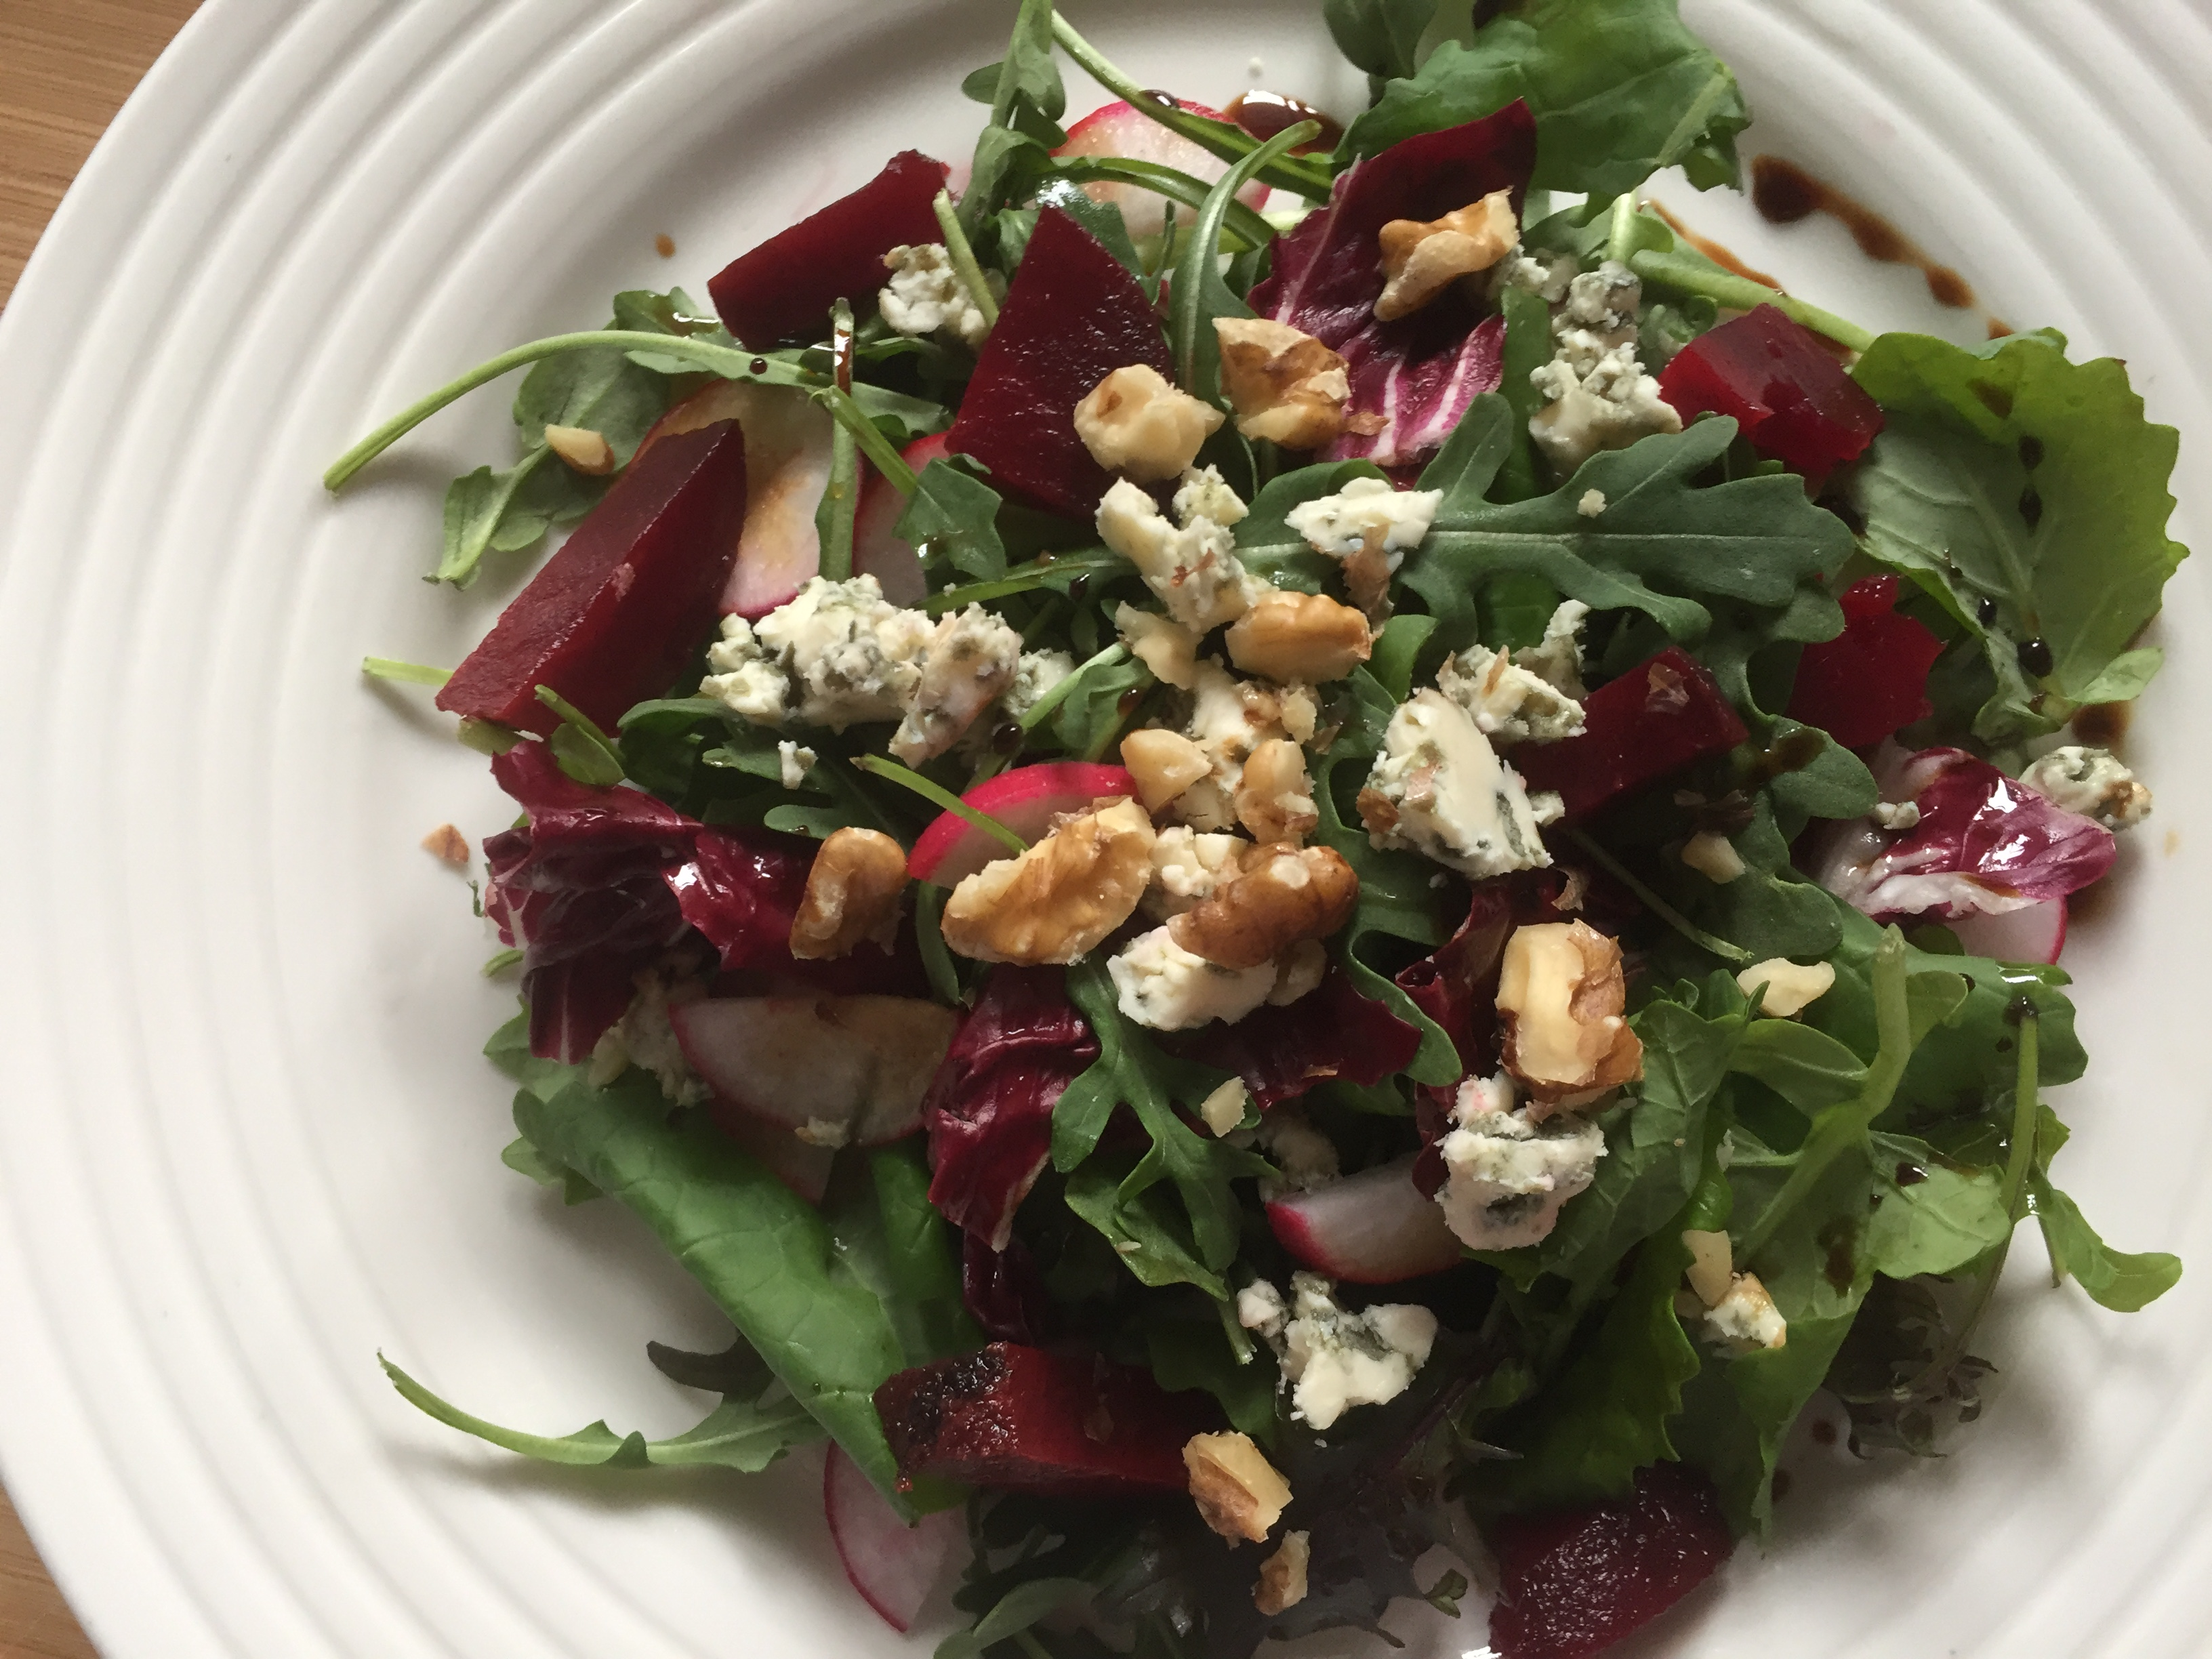 The ultimate Christmas salad: kale, beetroots, Stilton & walnuts with a clementine vinagrette.